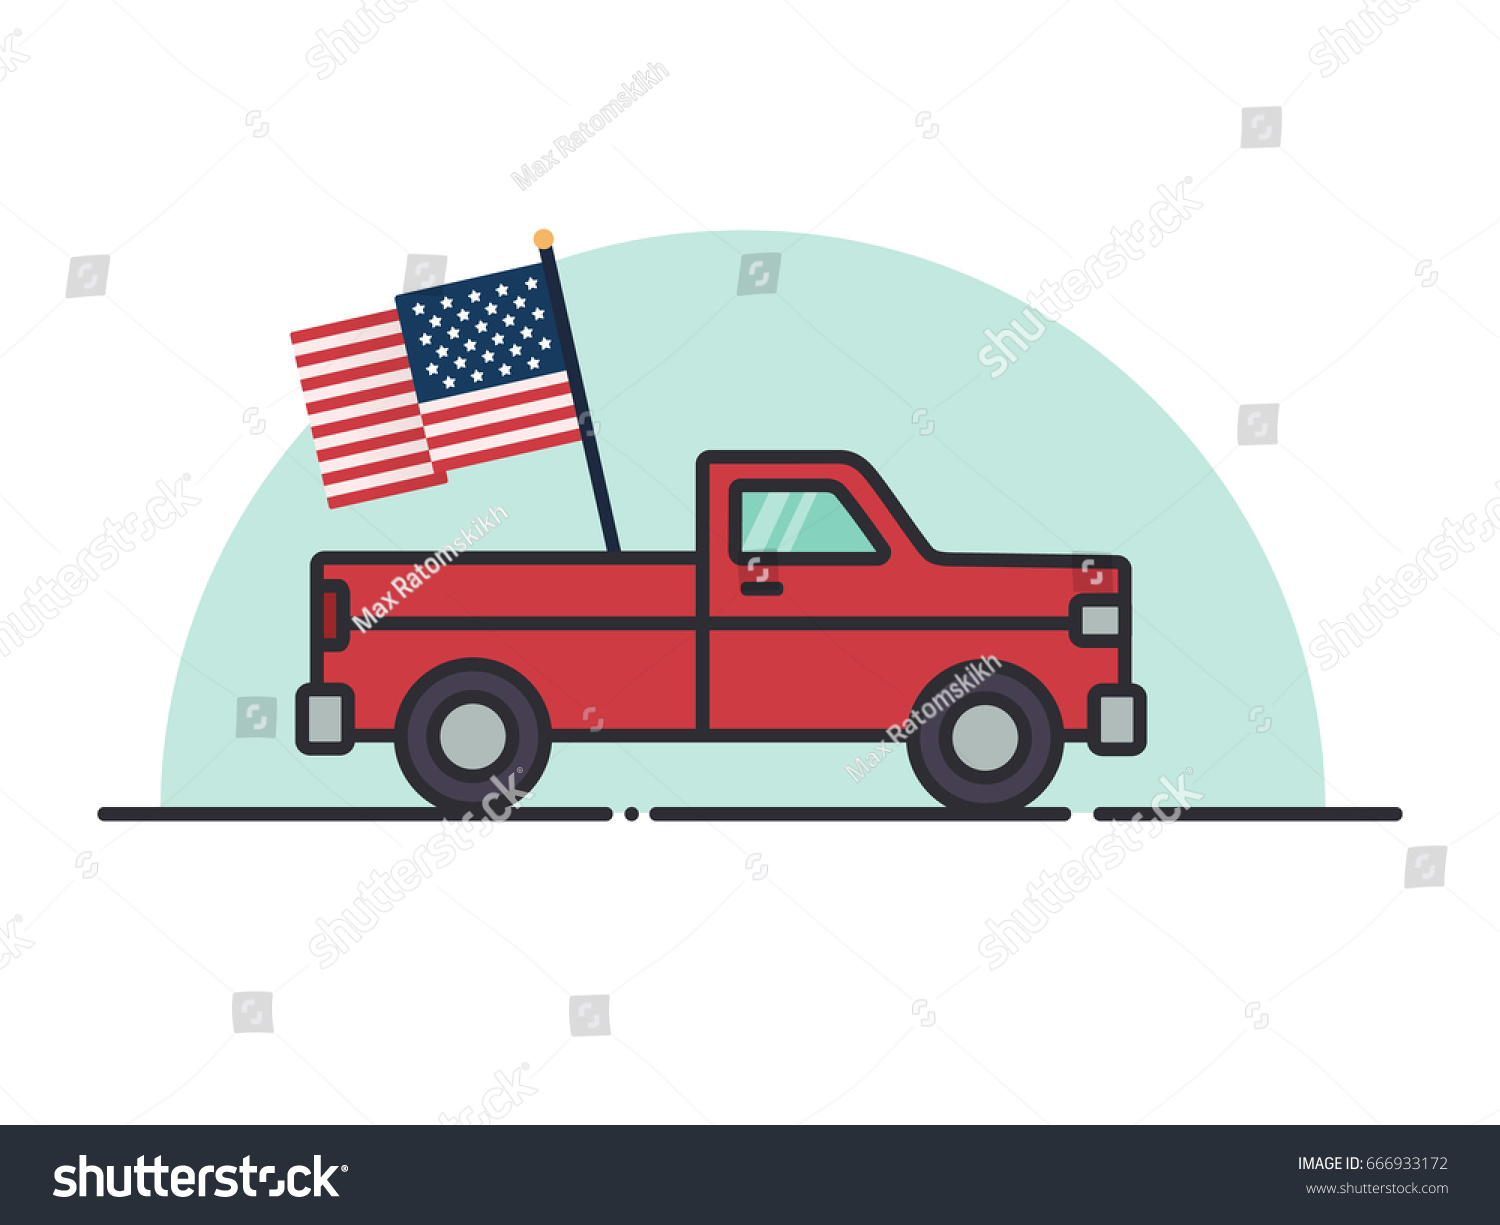 Pickup Truck Flat Style American Flag Stock Vector Royalty Free 666933172